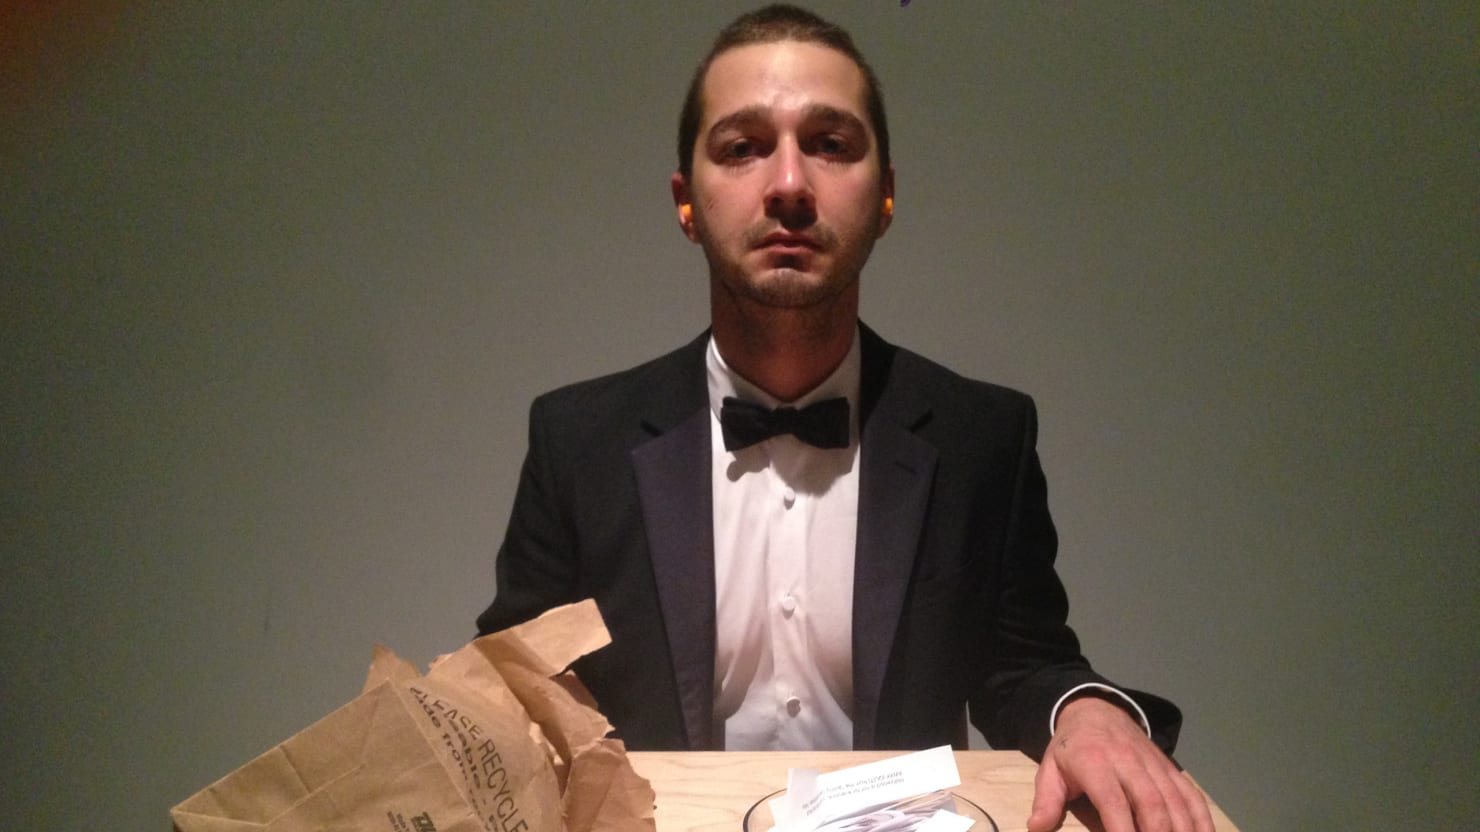 I Watched Shia LaBeouf Cry at His Weird LA Art Project #IAMSORRY